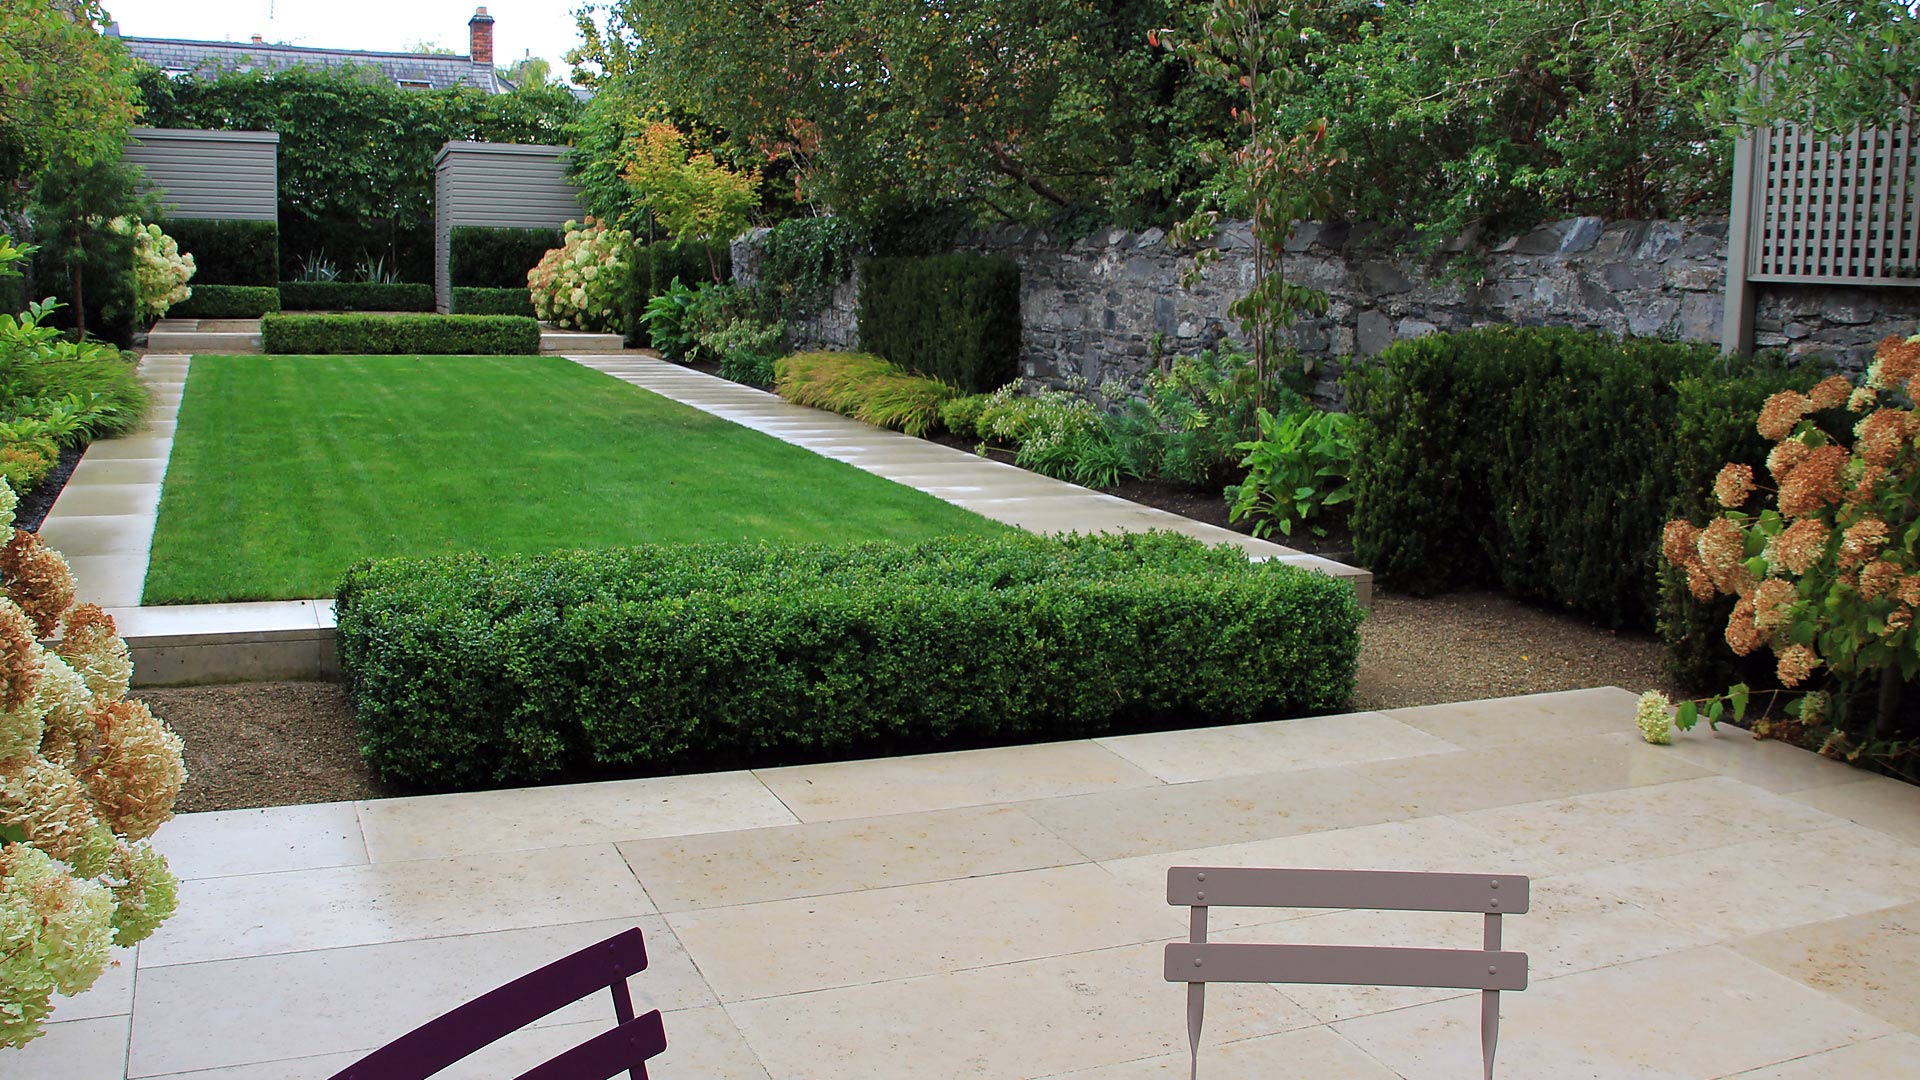 Large town garden damian costello garden design for Large patio design ideas